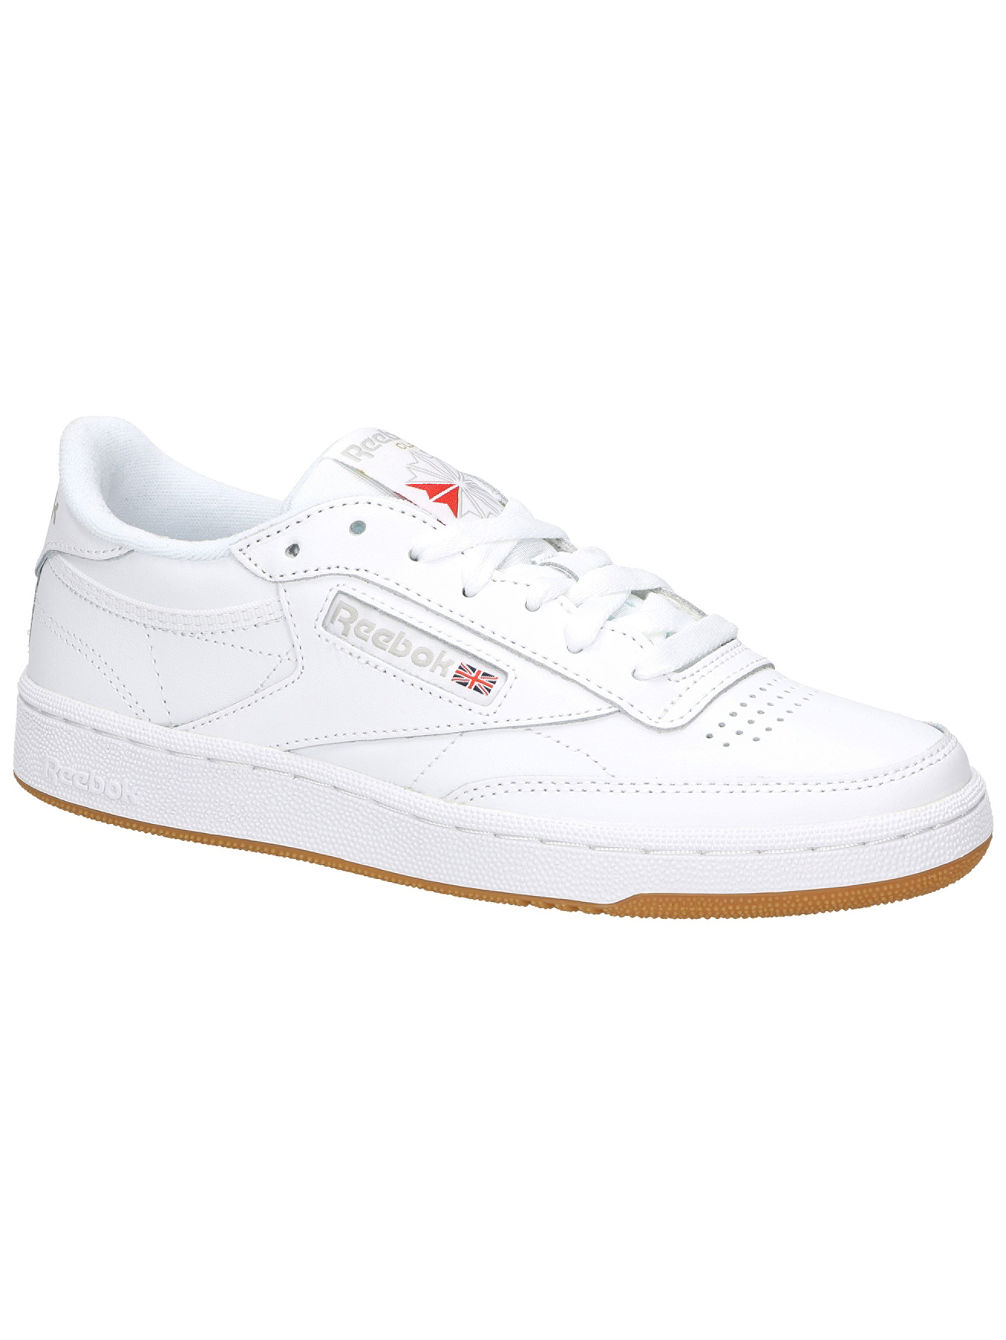 3ac8eb8a6f804 Buy Reebok Club C85 Sneakers online at Blue Tomato